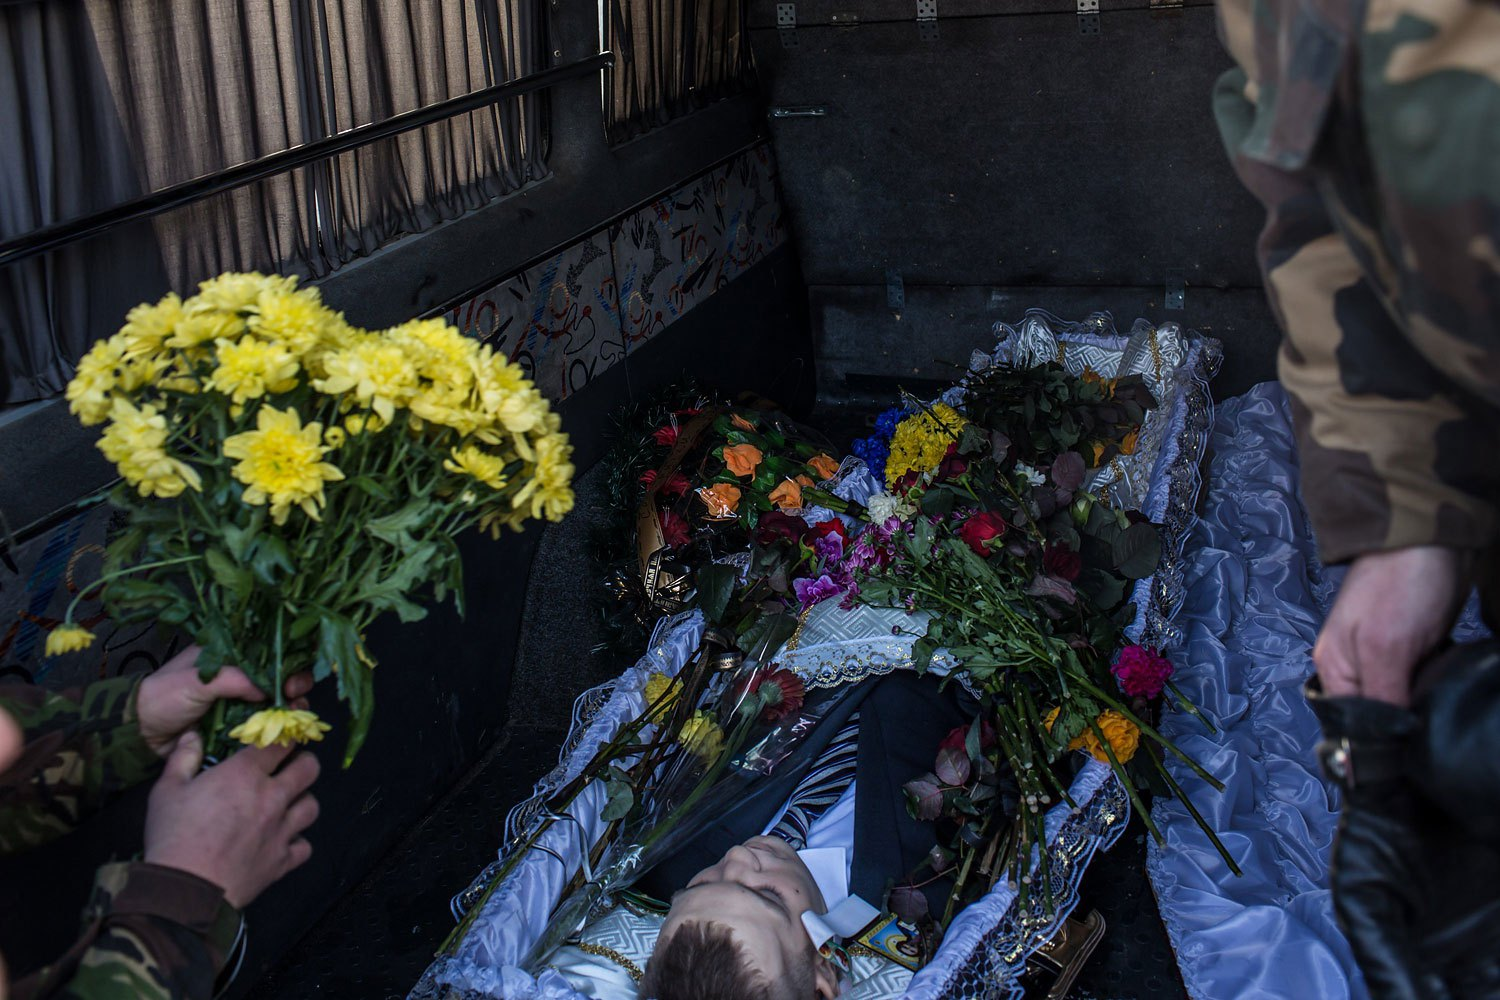 The body of Mikhail Zhiznevsky, 25, an anti-government protester who was killed in clashes with police, rests in the back of a hearse following a memorial service in his honor on Jan. 26, 2014 in Kiev.